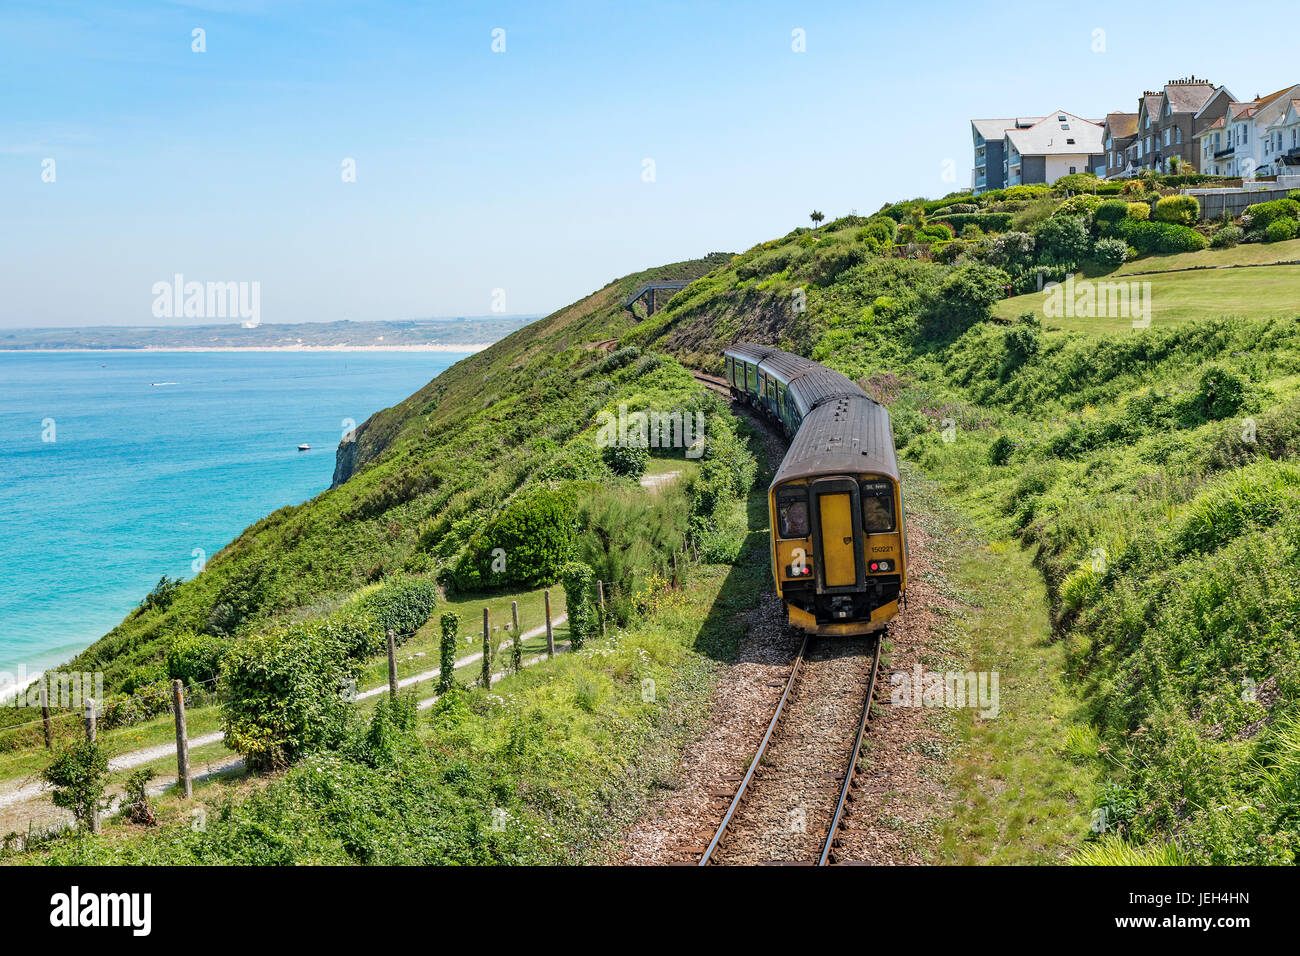 the st.ives branch railway line passing carbis bay in cornwall, england, britain, uk. - Stock Image